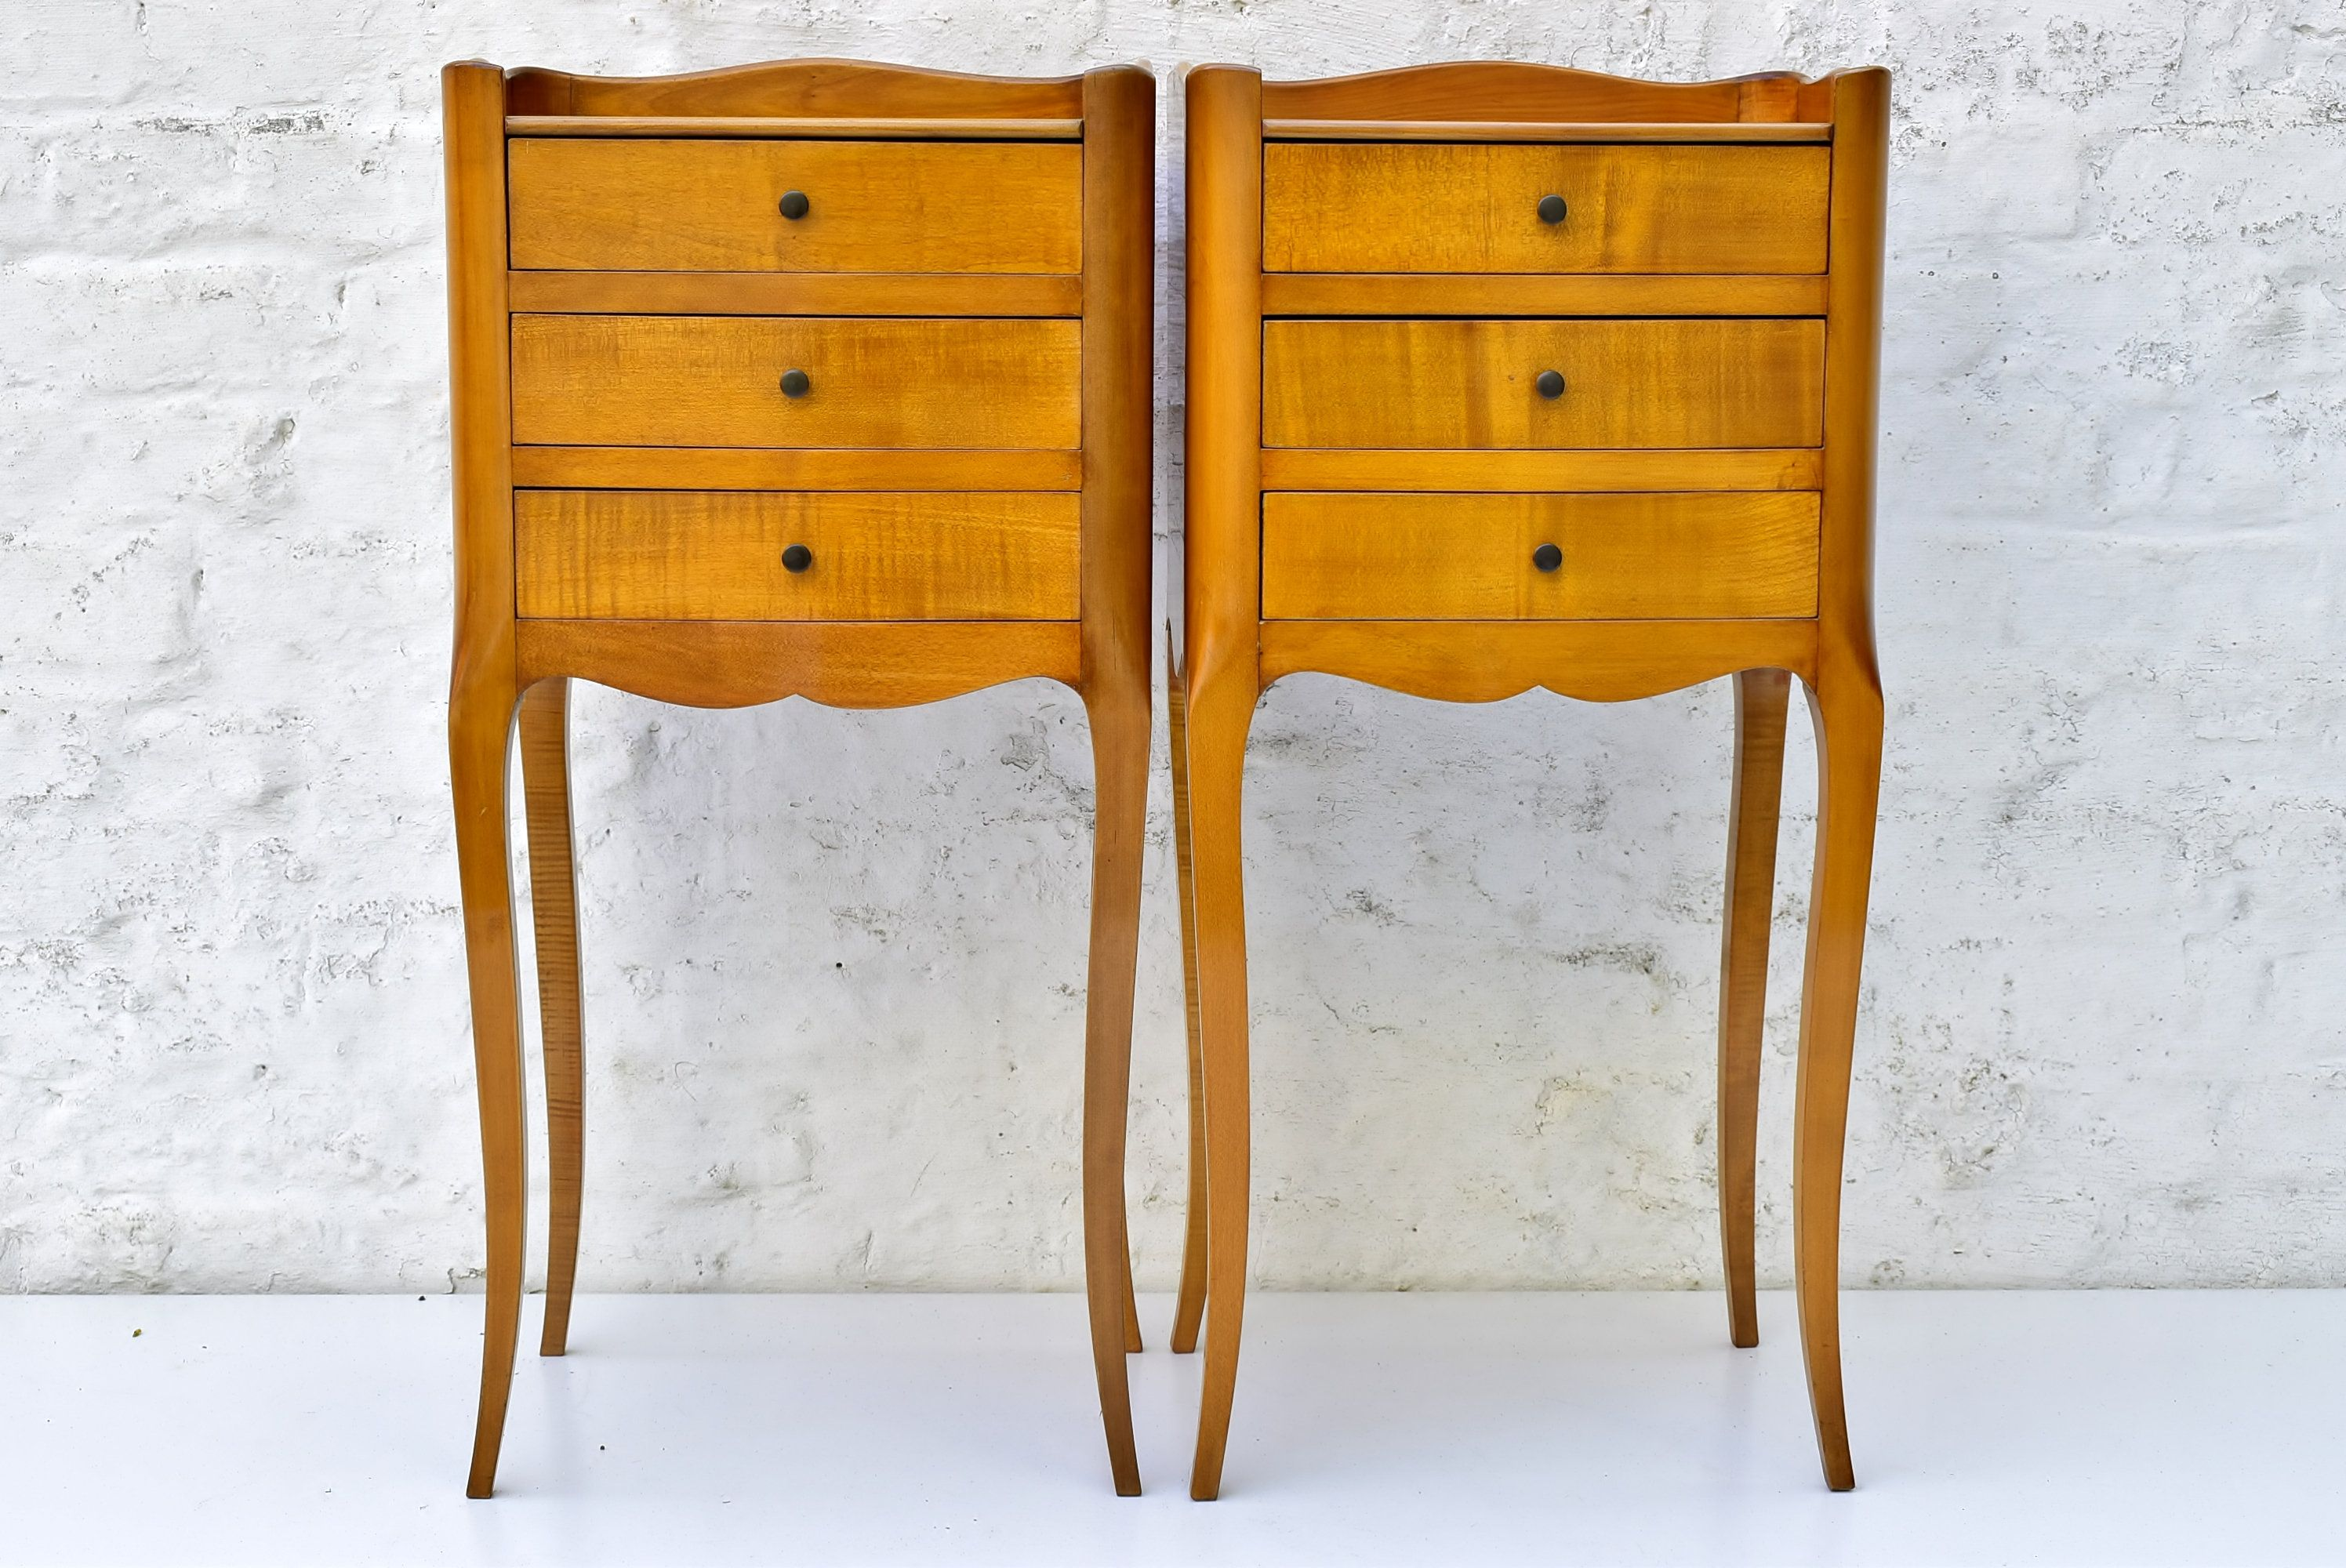 Pair French Bedside Tables Antique Nightstands Of Cherry Wood